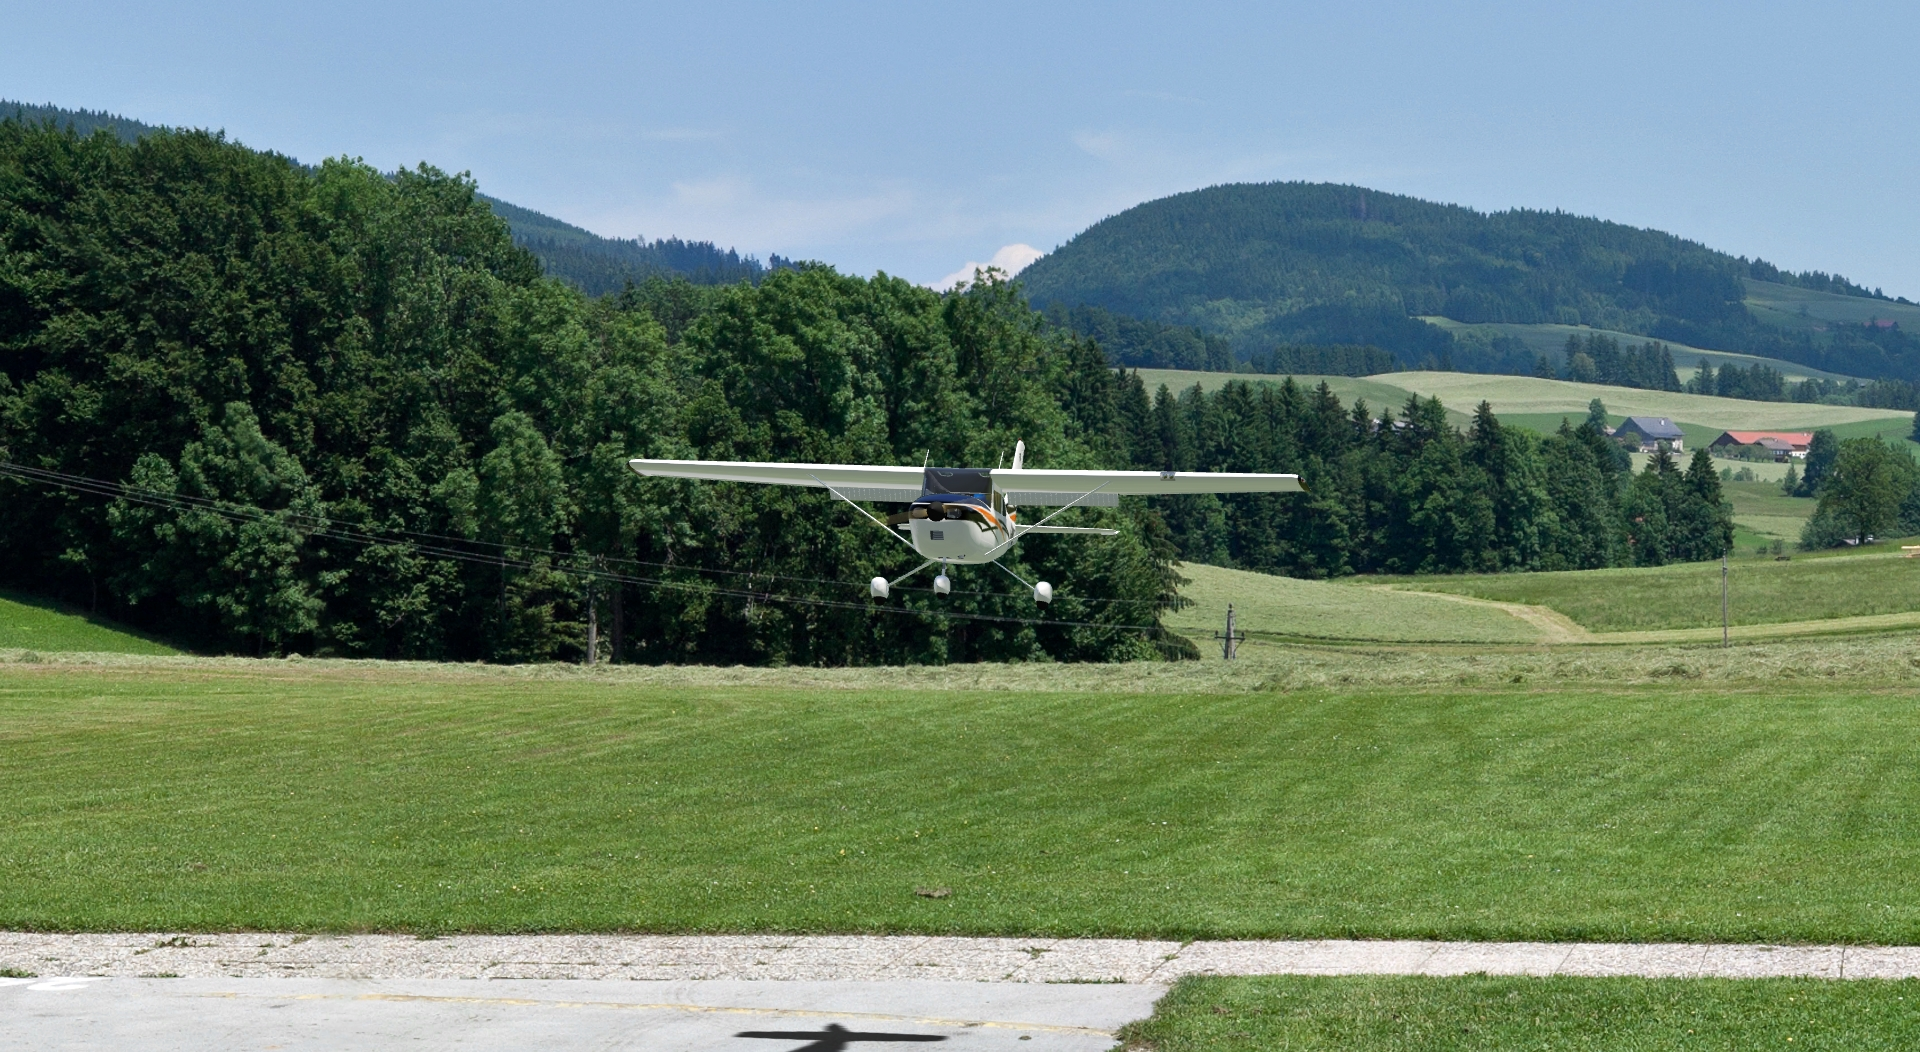 Cessna 182 Skylane in the aerofly RC 7 scenery mfcsalzburg